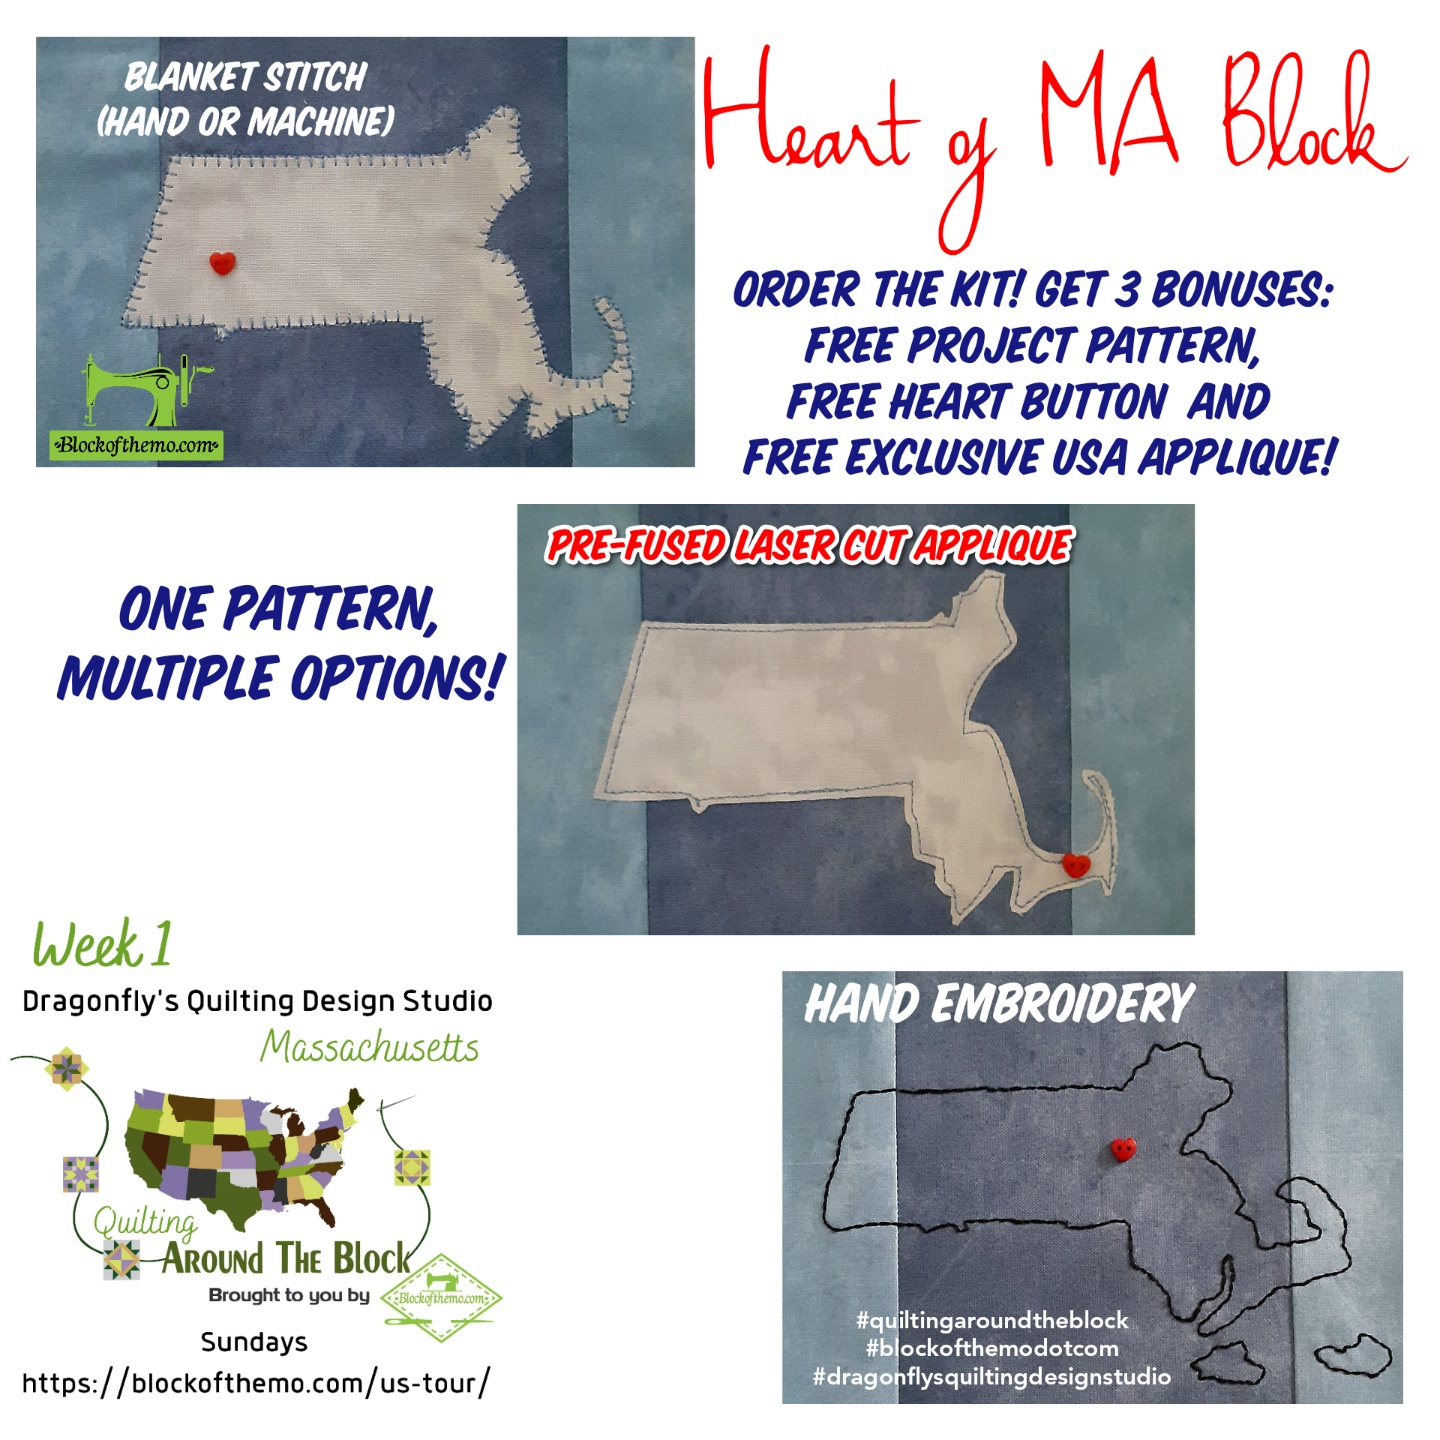 State of MA (Complimentary digital pattern)